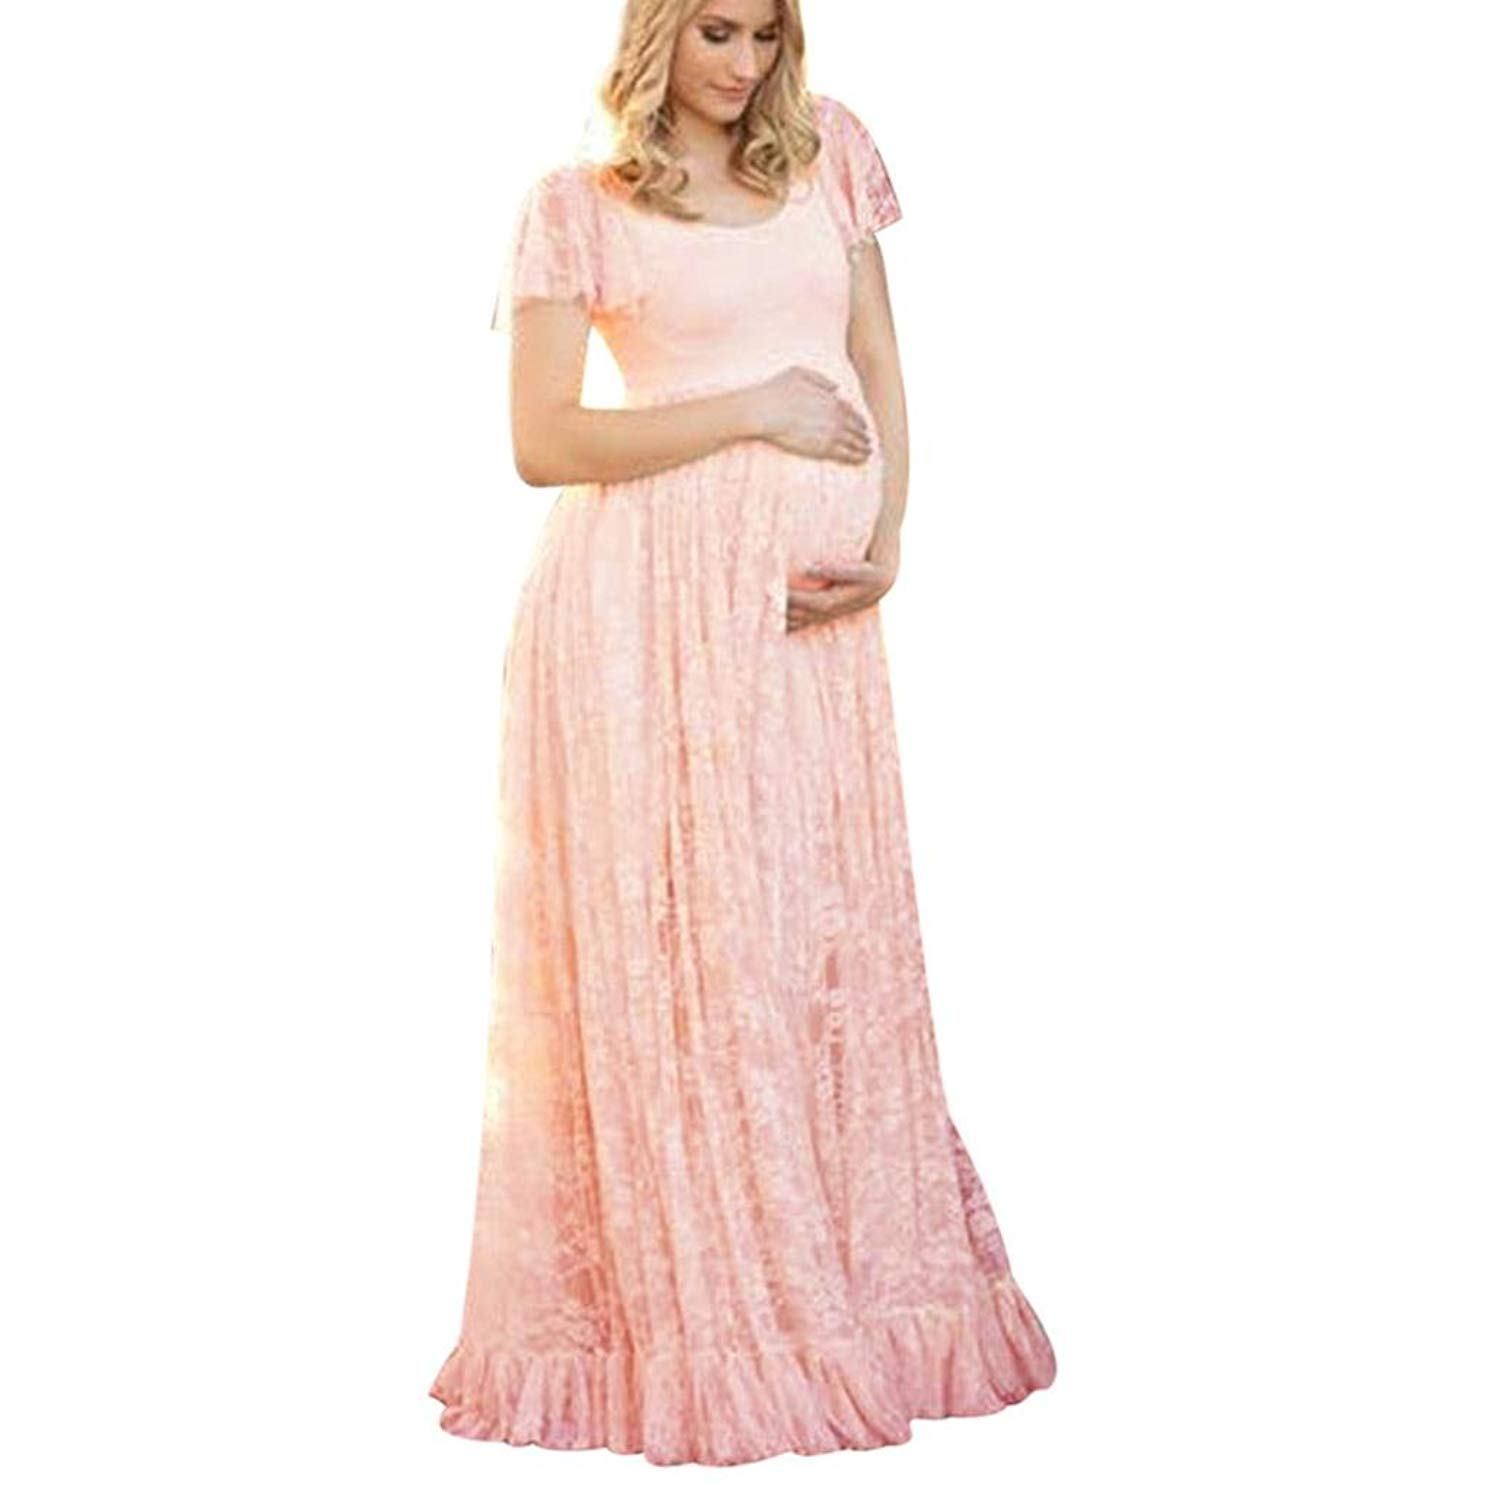 b45f84fd2d0fb Get Quotations · Hot Sale! Maternity Dresses Fabal Women's Floral Lace  Short Sleeve Photography Fly Sleeves O Neck